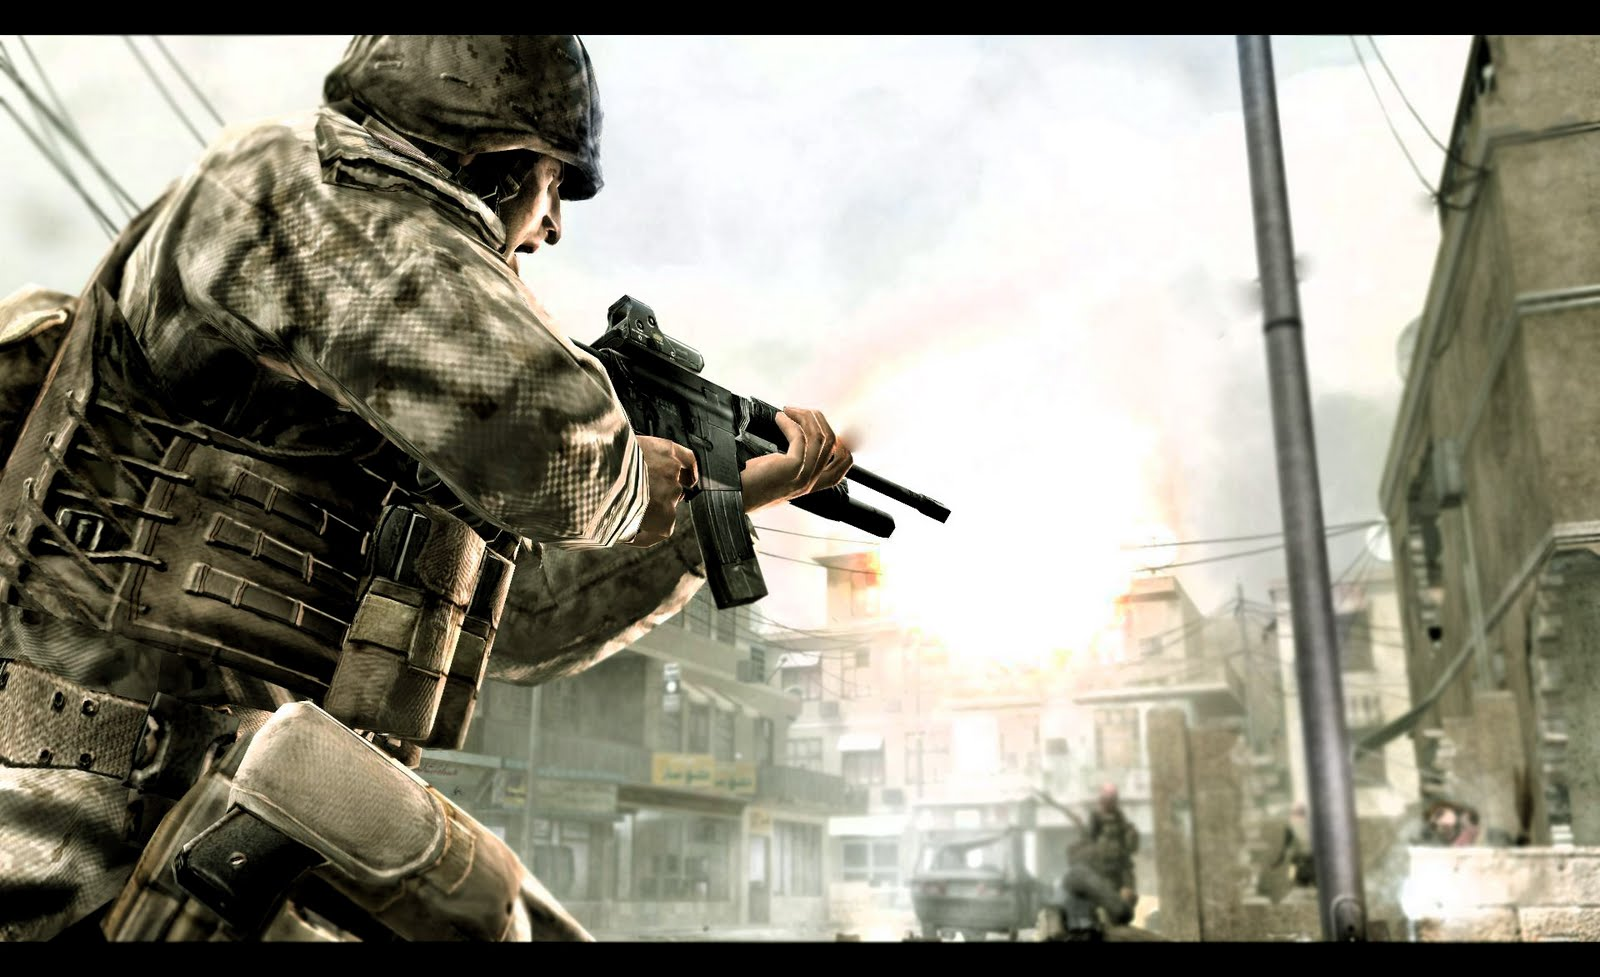 http://4.bp.blogspot.com/-Jm25sW33MAs/Th6AsqpuVSI/AAAAAAAABKc/9_DRx5ZNeW8/s1600/Call_of_Duty_4_Wallpaper_by_Sully_182.jpg